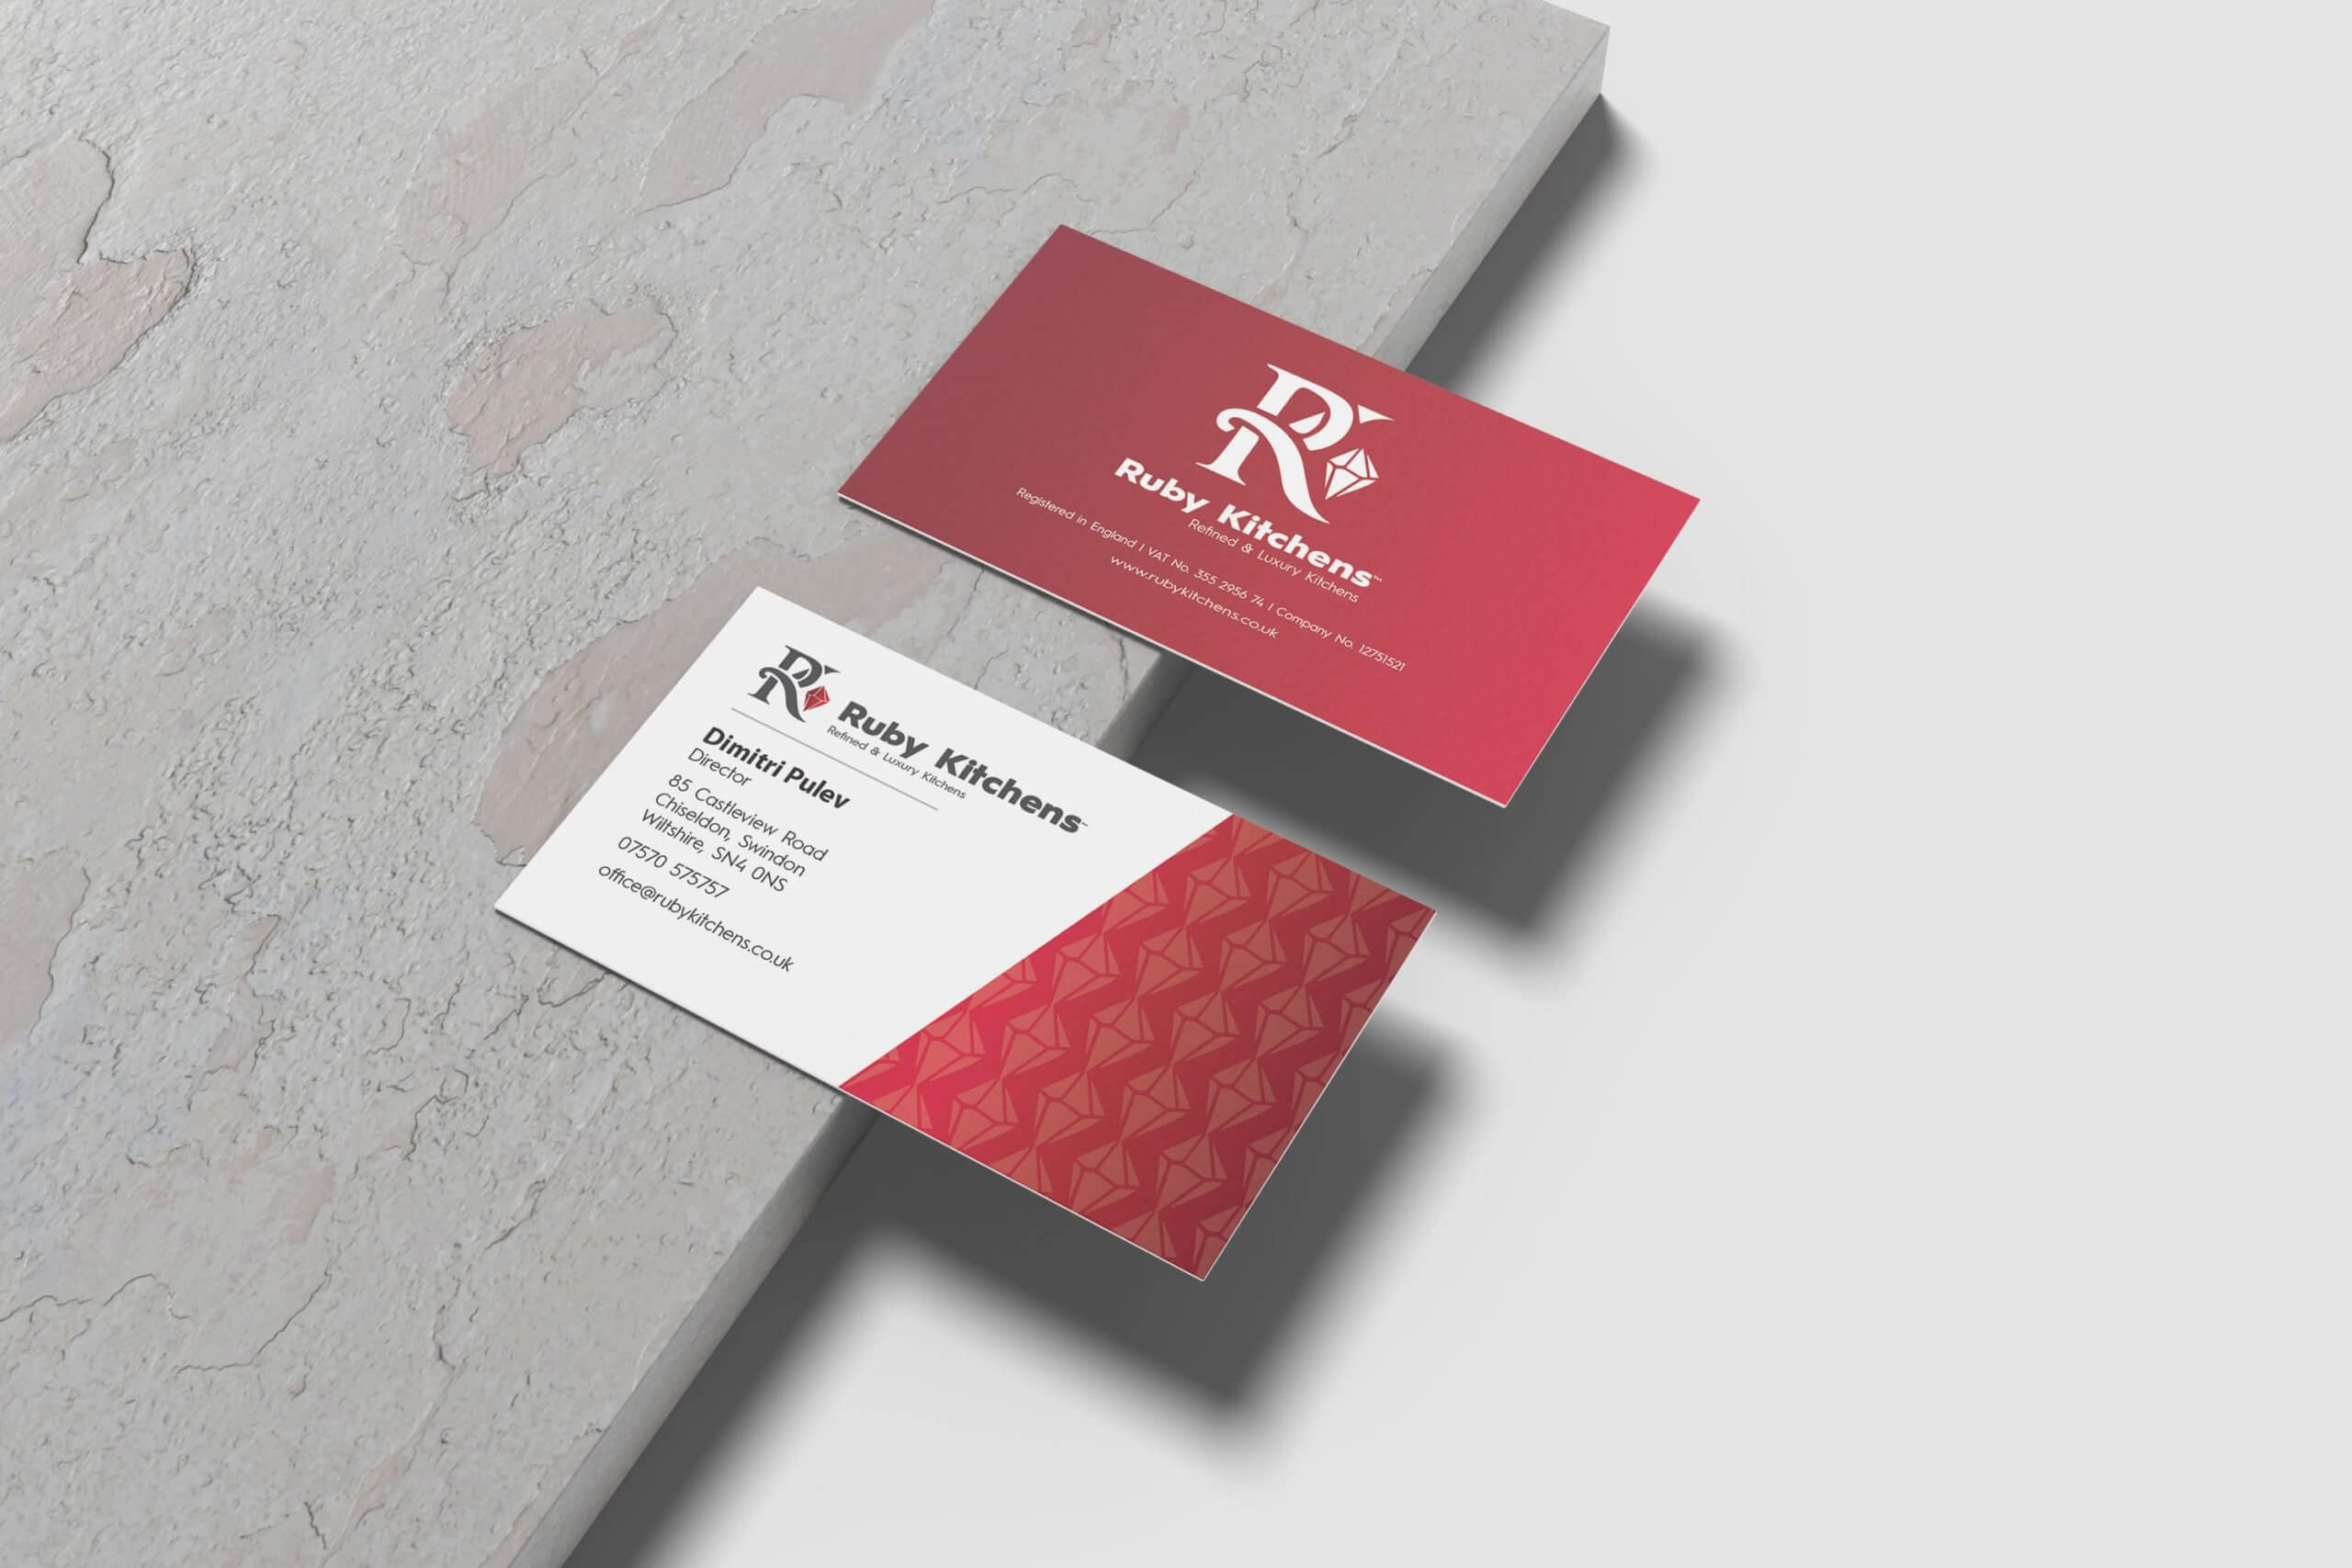 Ruby Kitchens Business Card Design